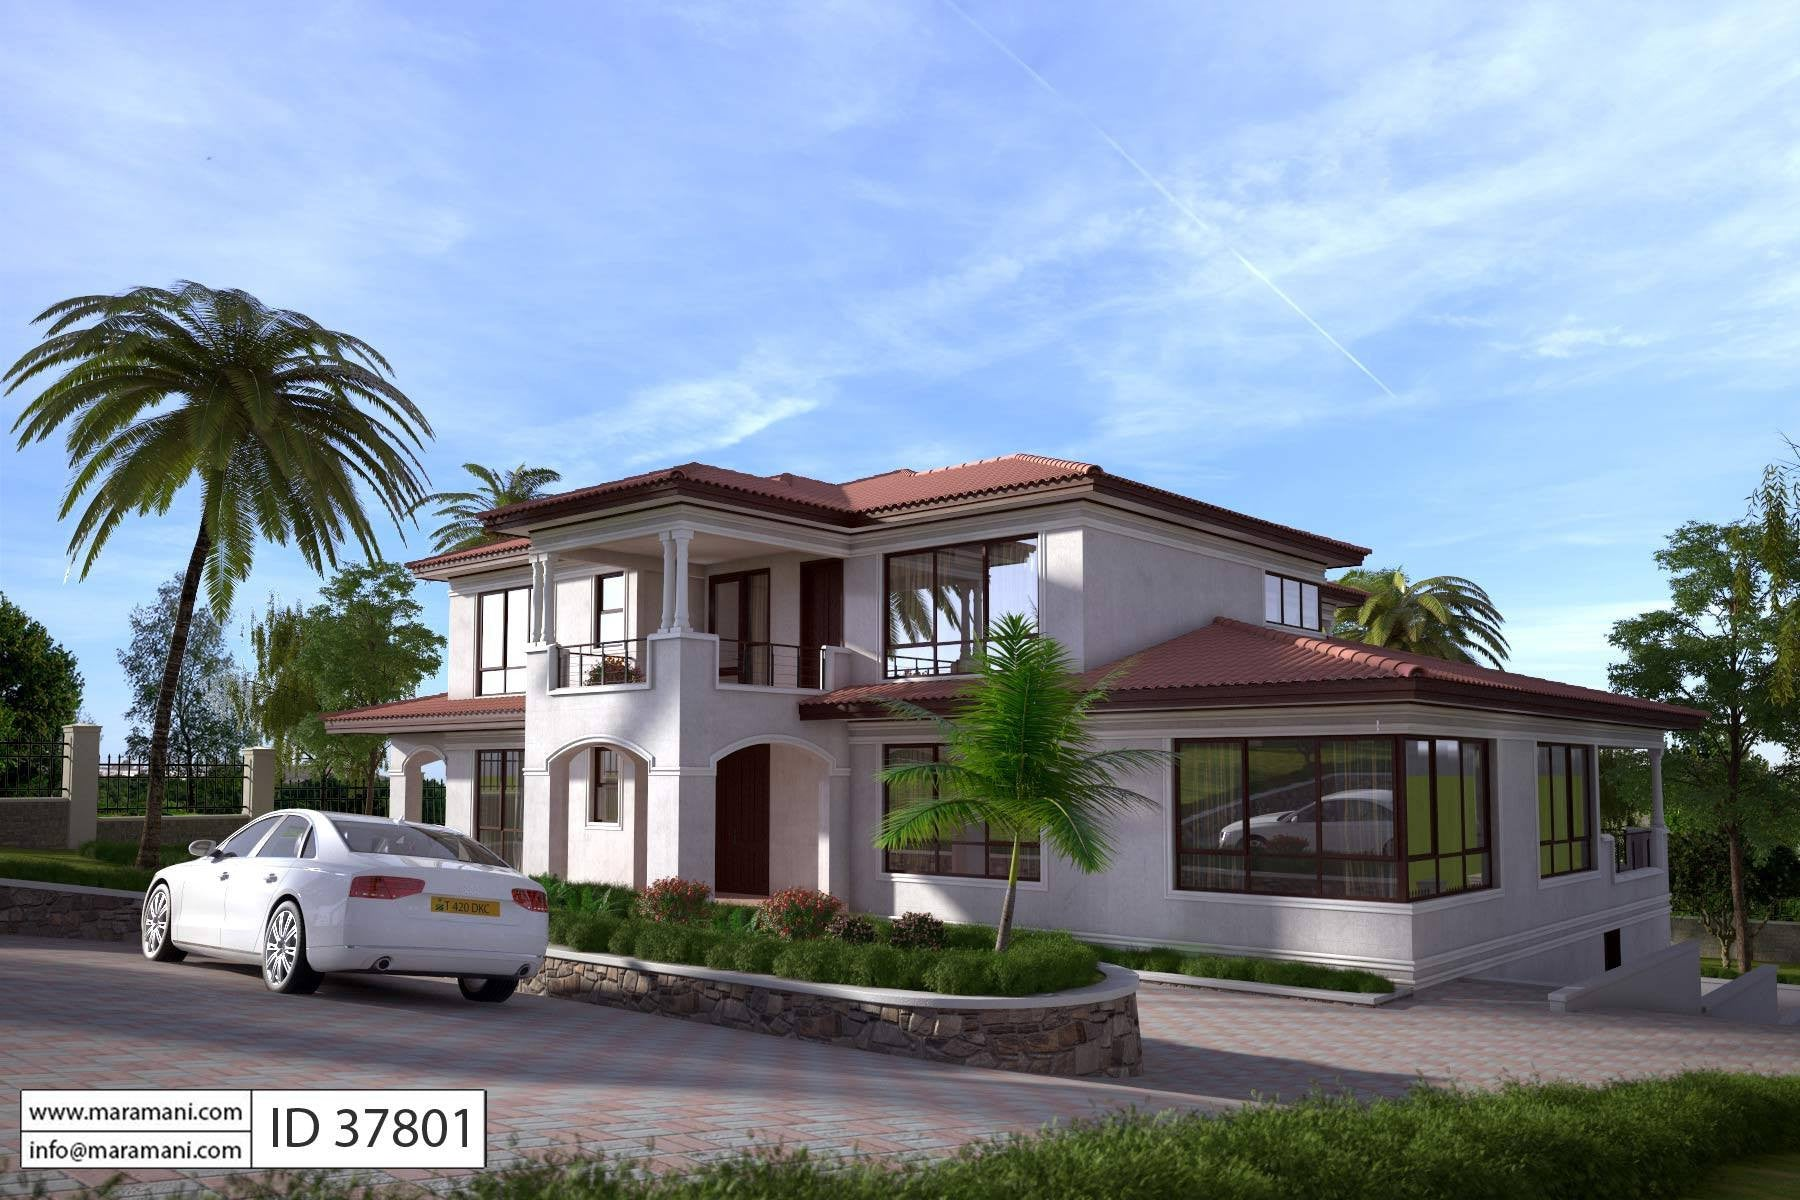 7 bedroom house design id 37801 house designs by maramani for 7 bedroom house designs